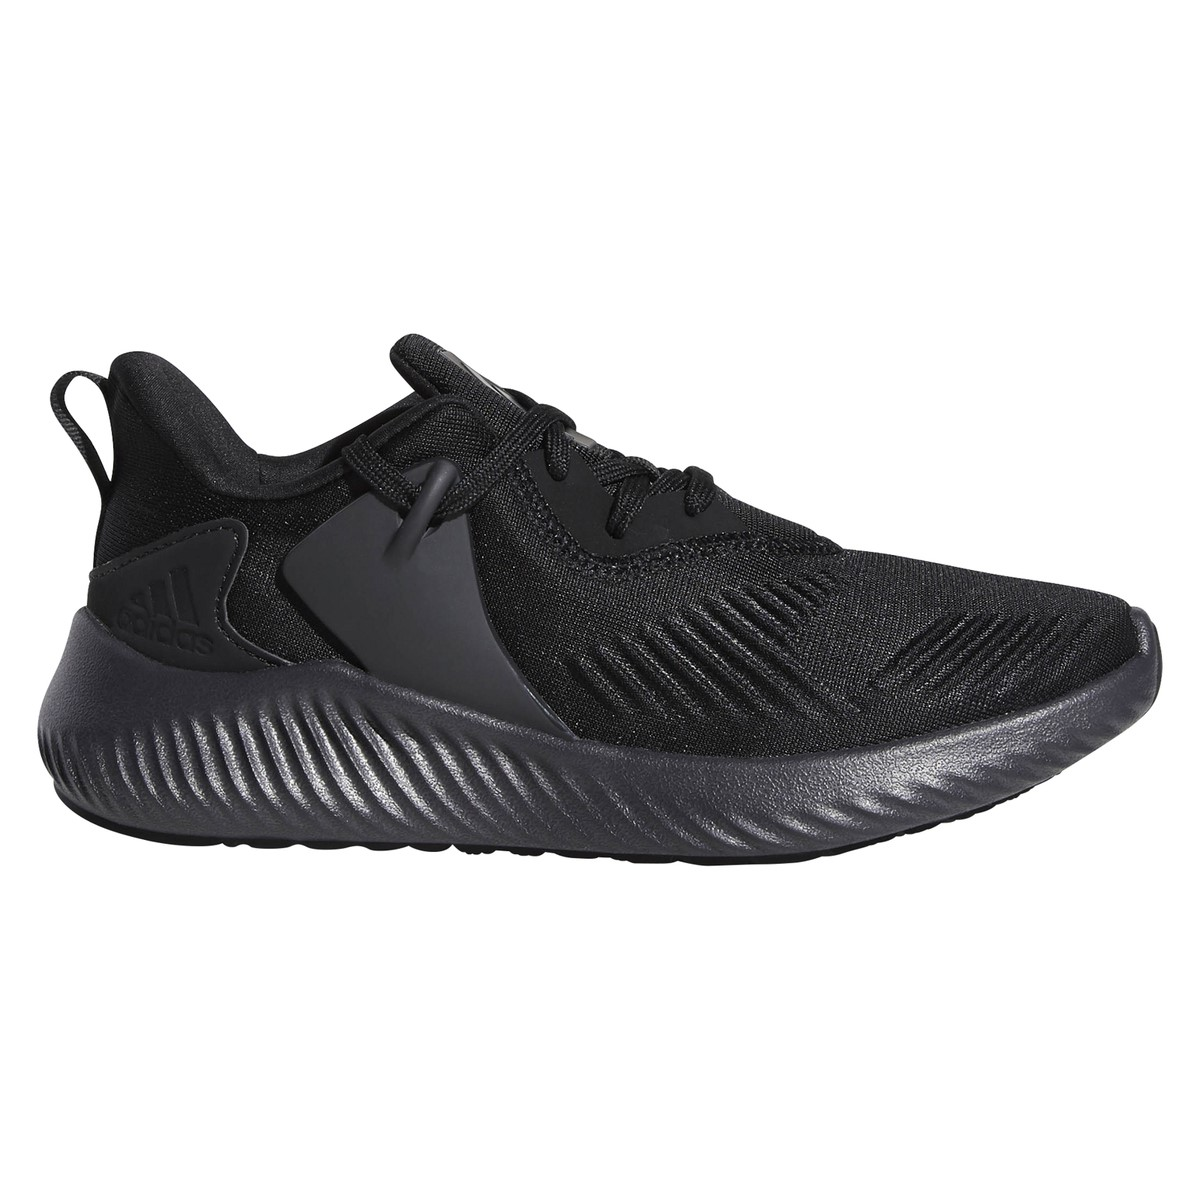 15f28a16ed77f Adidas AlphaBounce RC 2 - Kids Running Shoes - Core Black Carbon ...